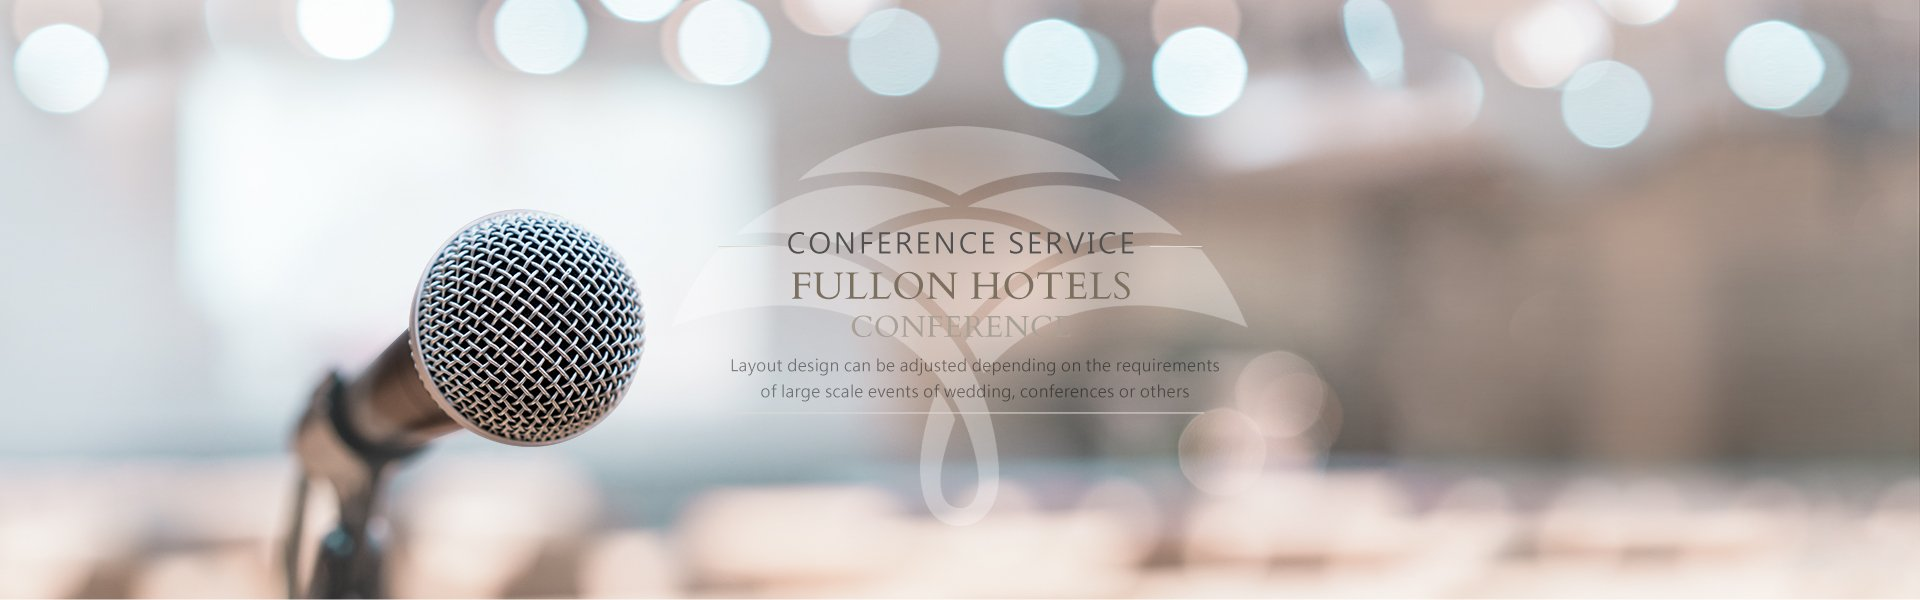 Conference Service